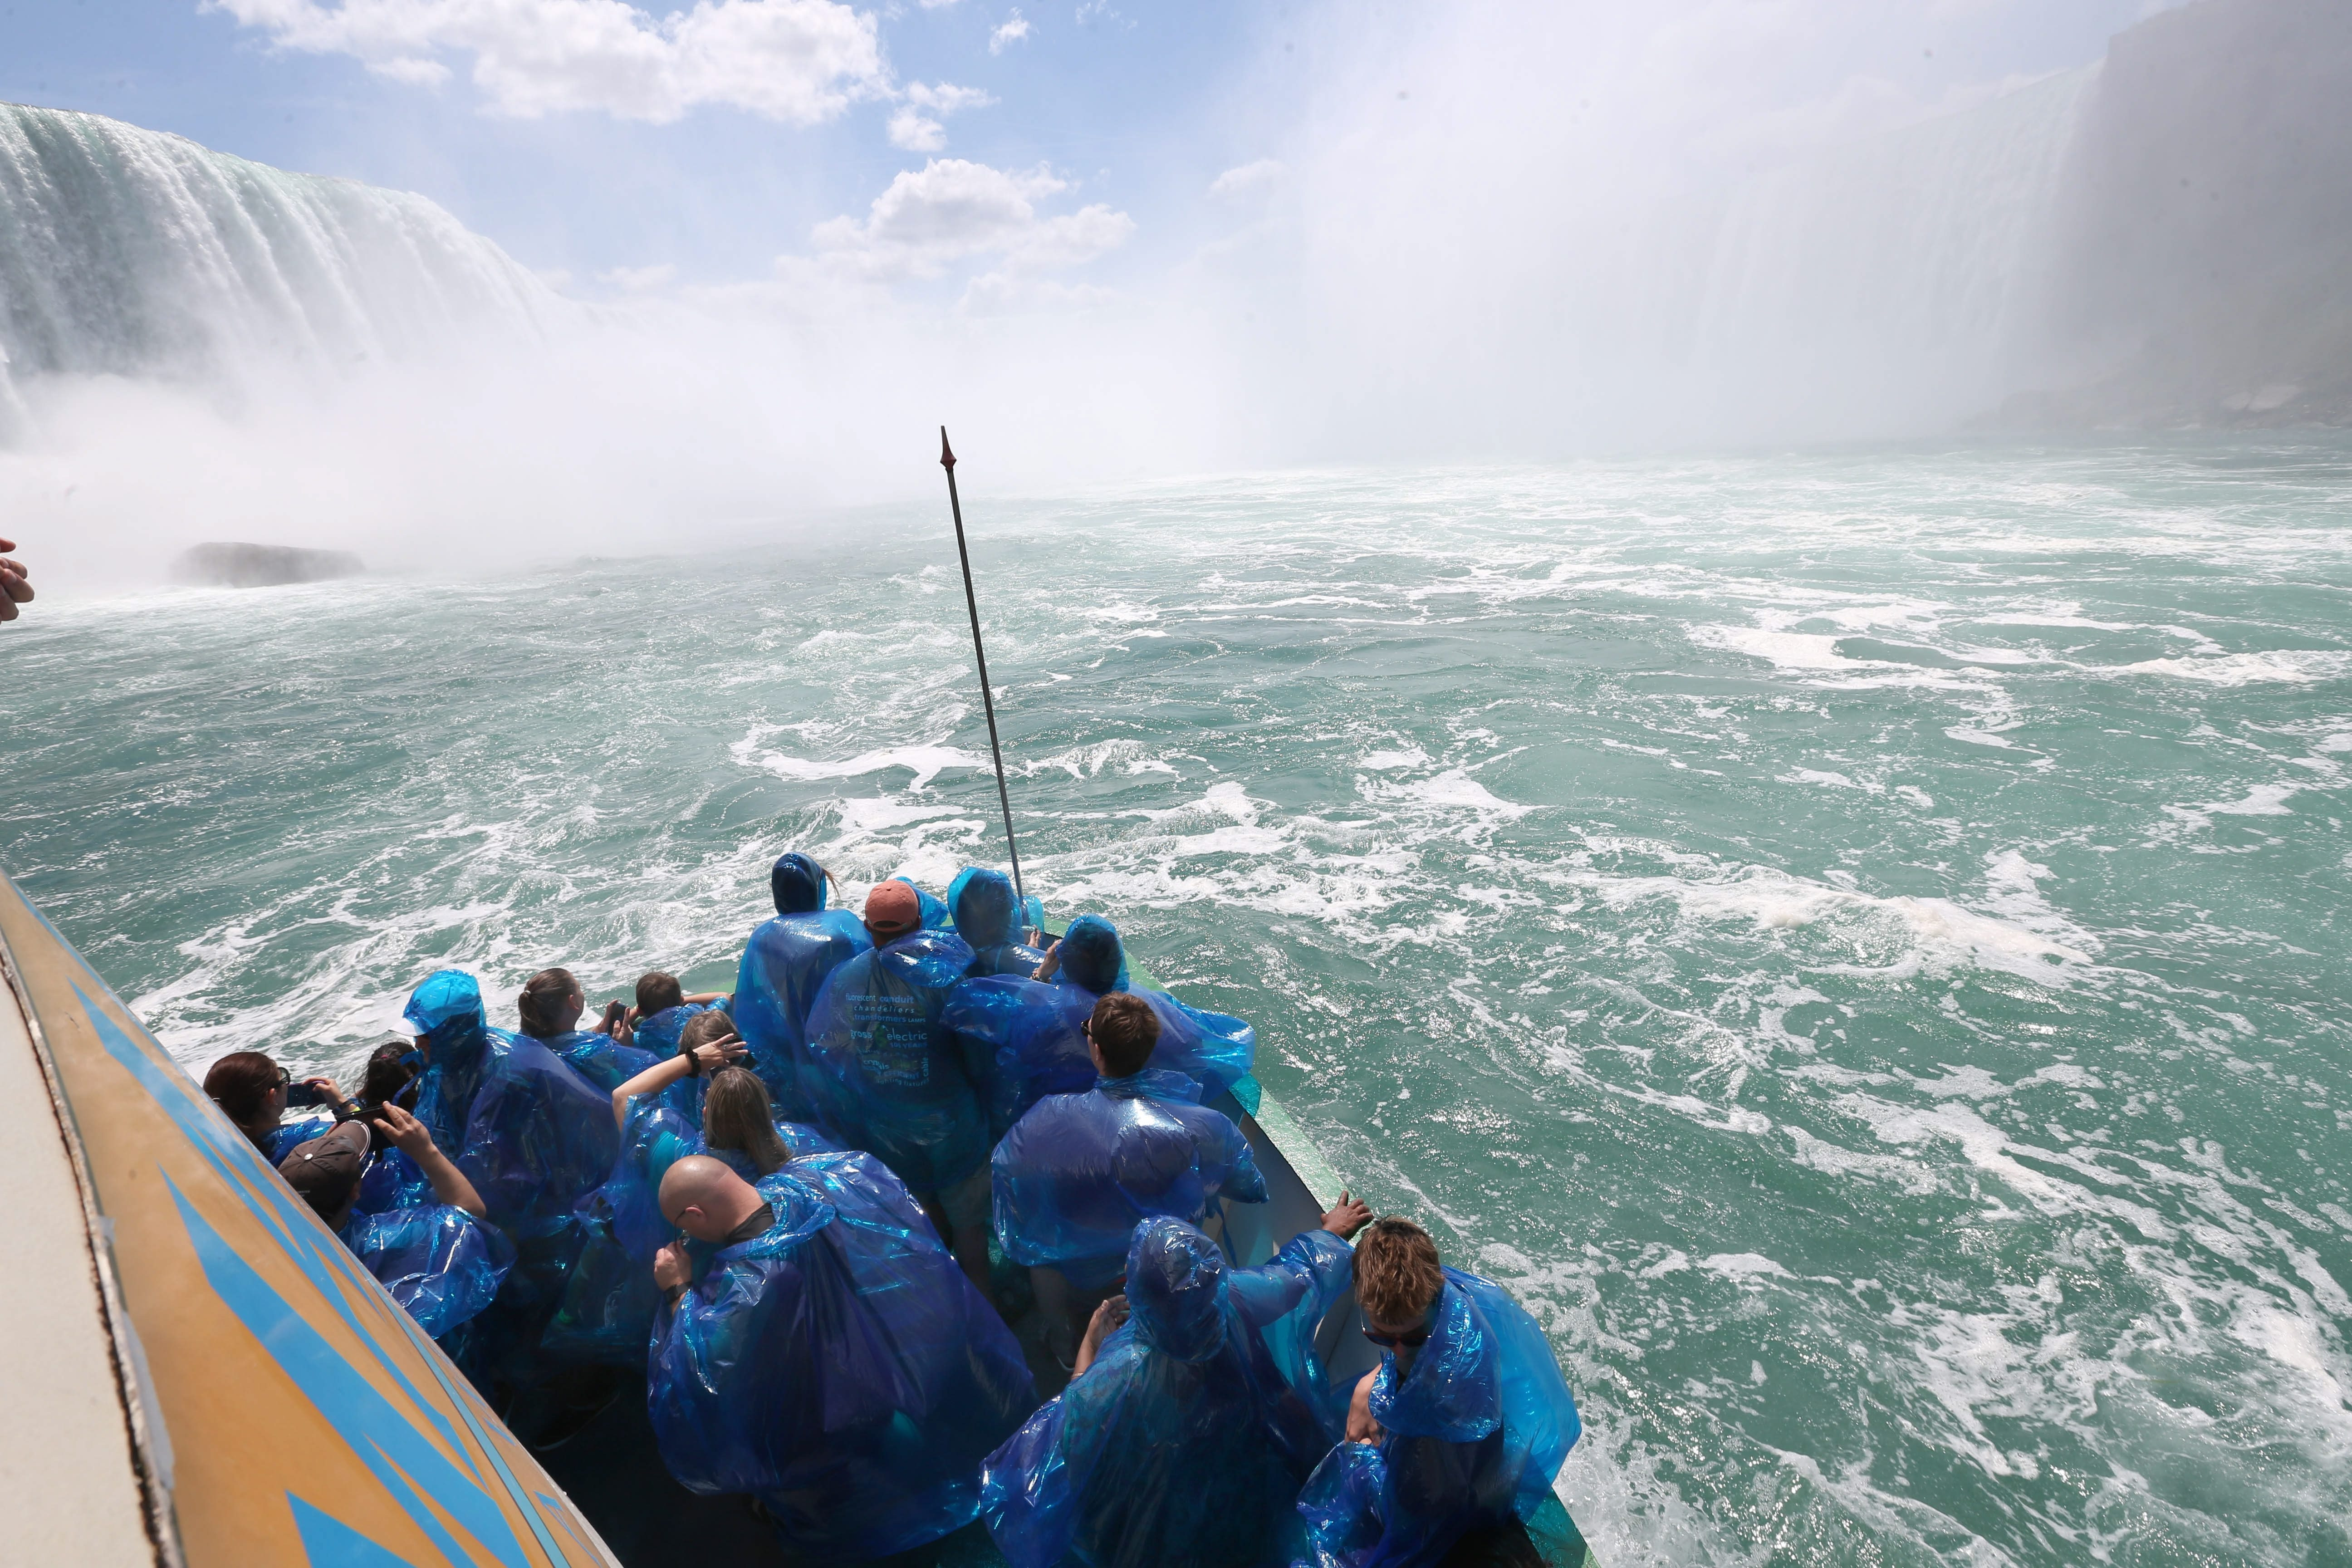 100 things to do: Take a ride on Maid of the Mist